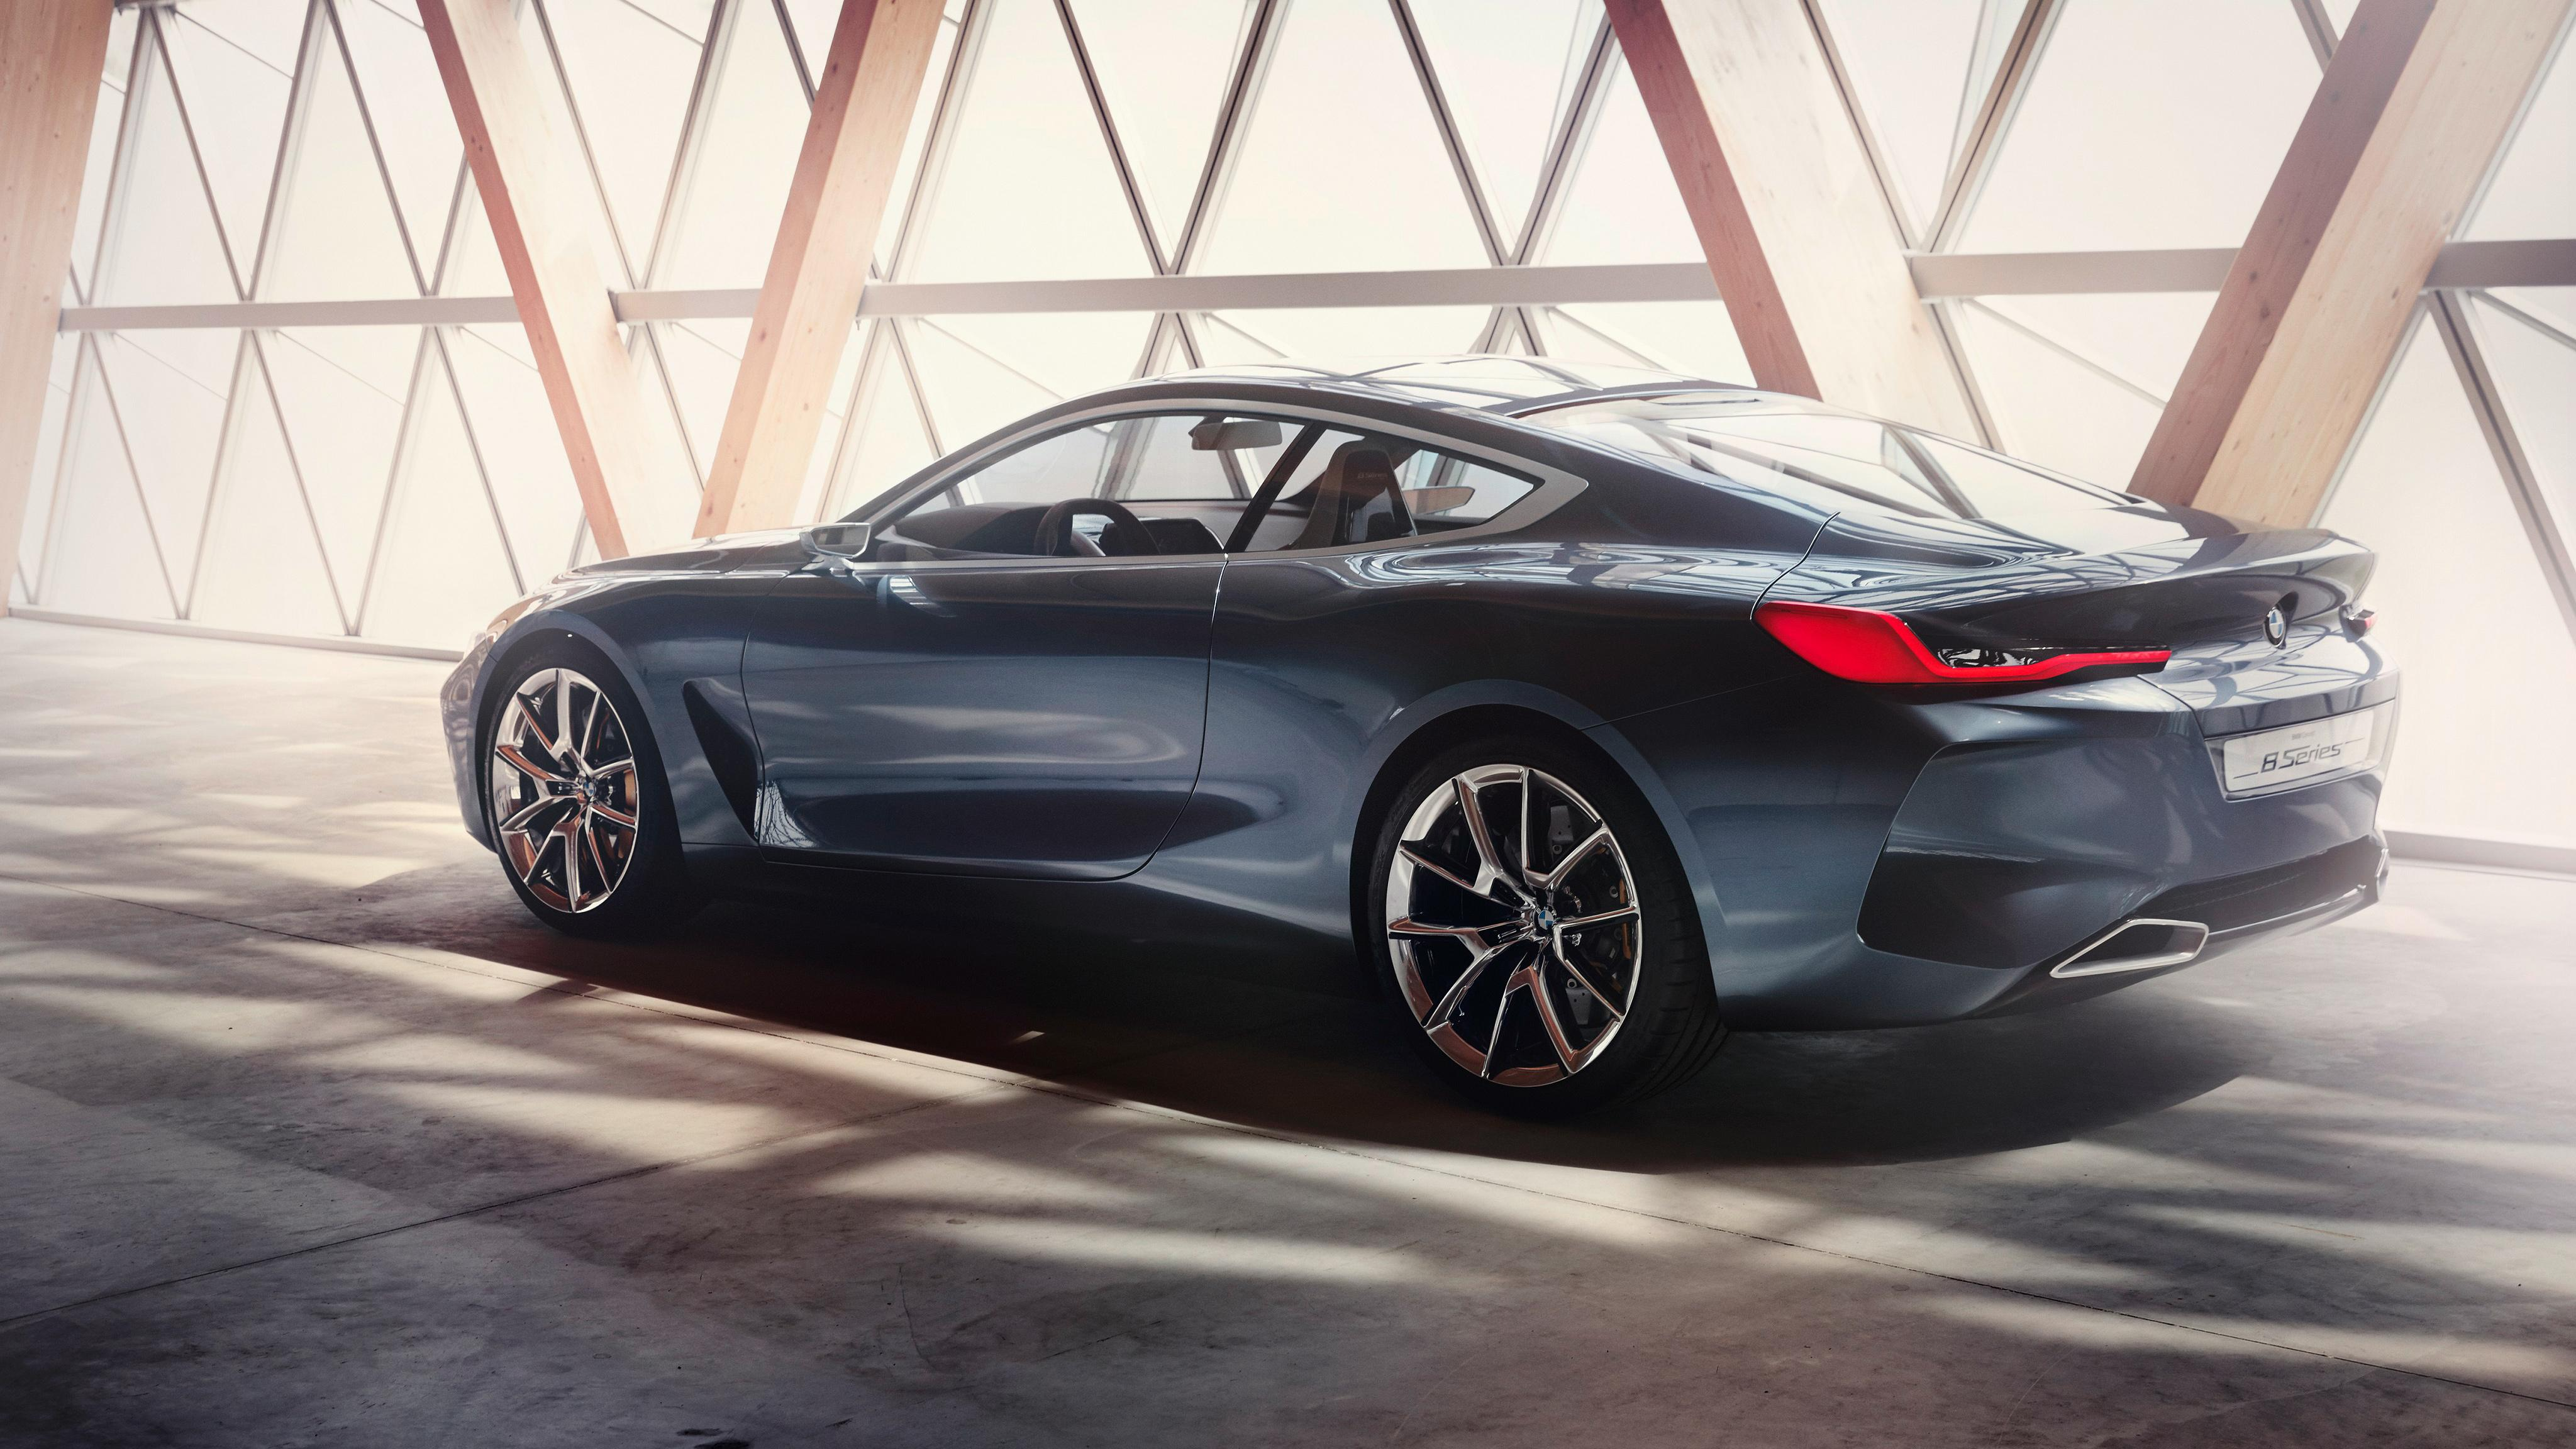 BMW Concept 8 Series 7Similar Car Wallpapers wallpapers